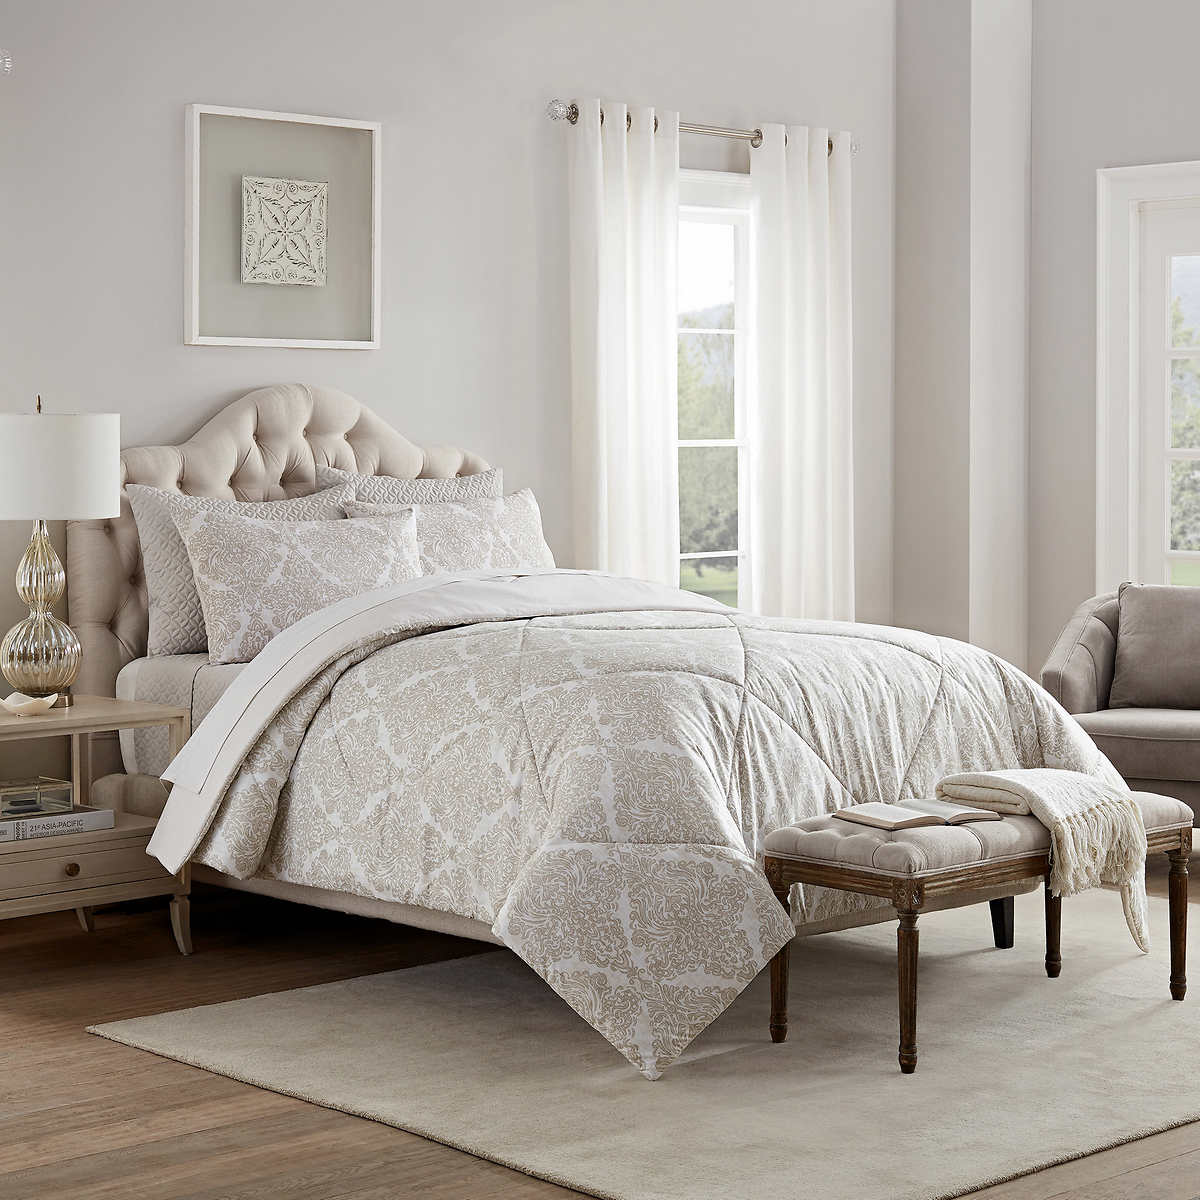 Style Decor 6-piece Comforter And Coverlet Set, Kate Neutral